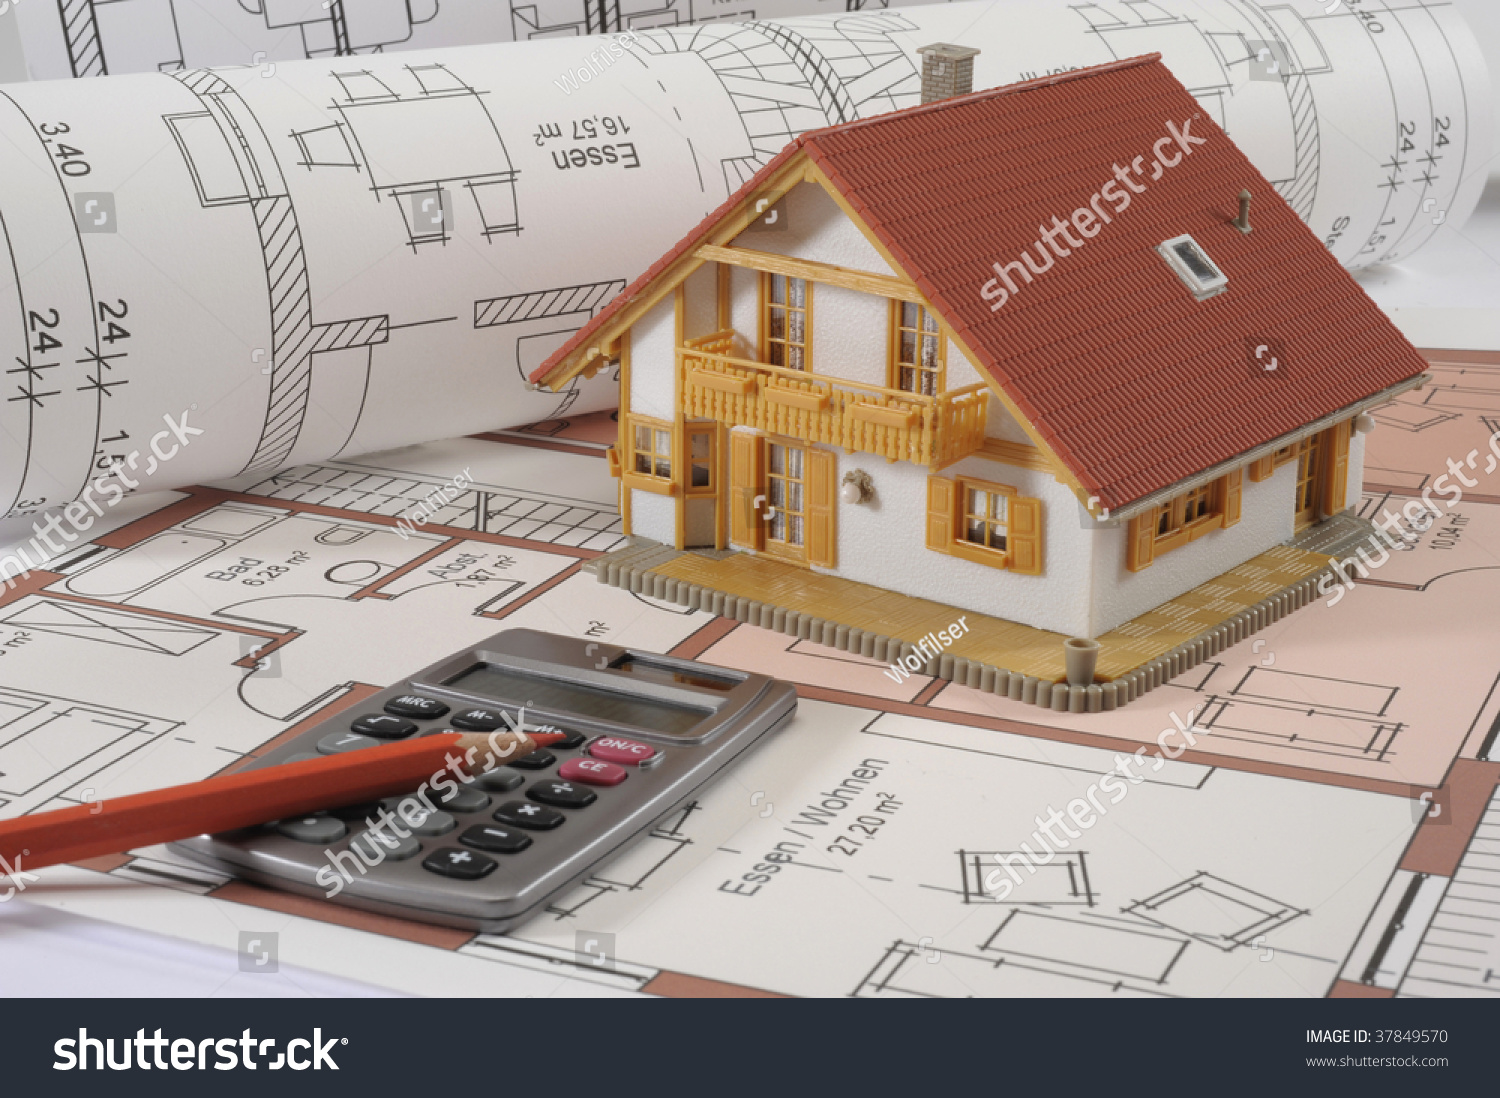 Model house and calculator on construction plan symbolic for Build my home calculator